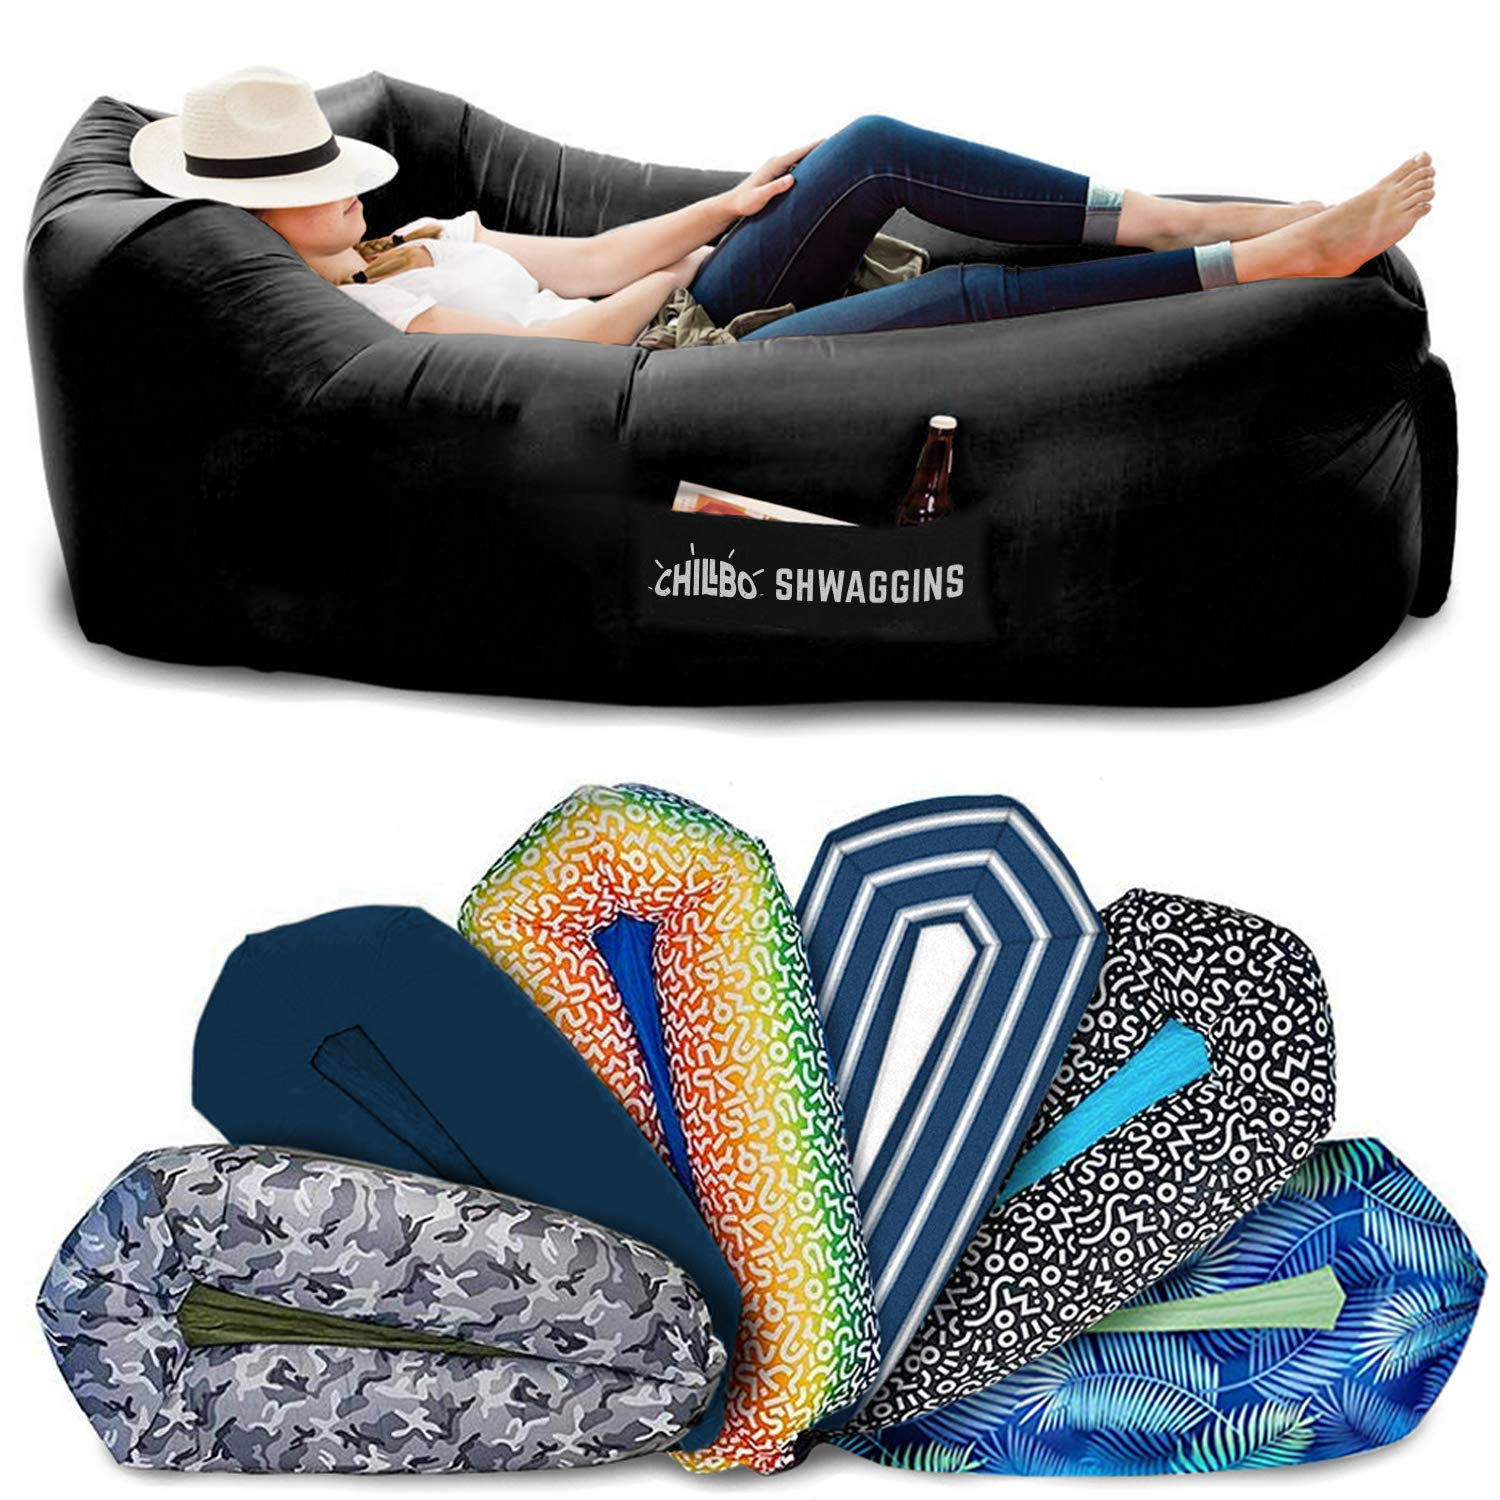 Chillbo SHWAGGINS 2.0 Best Inflatable Lounger Portable Hammock Air Sofa and Camping Chair Ideal Gift Inflatable Couch and Beach Chair Camping Accessories for Picnics & Festivals (Black) by Chillbo